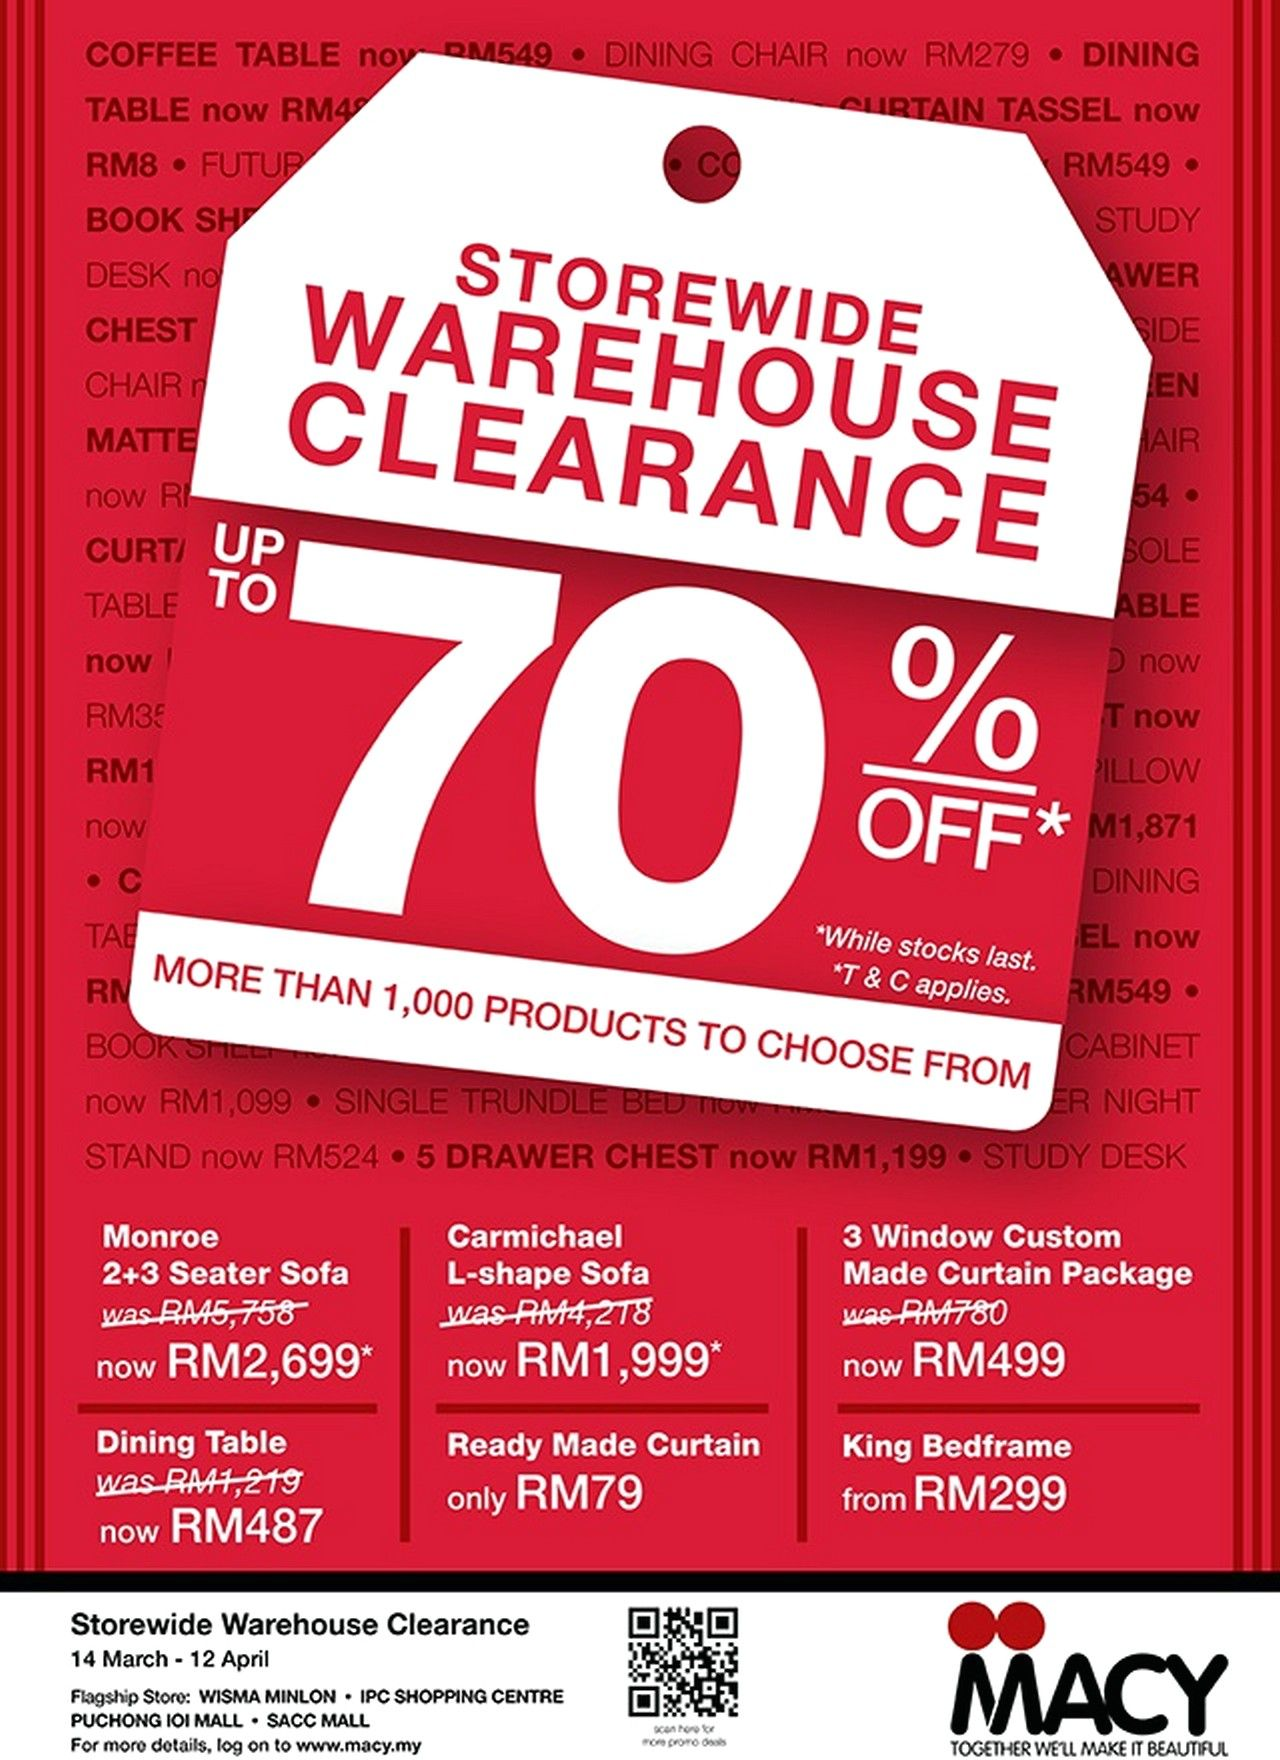 Macy Furniture Malaysia Are Having Their Furniture Clearance Warehouse Sale  Now. Enjoy Storewide Warehouse Sale Clearance Discounts Up To On Furniture,  ...